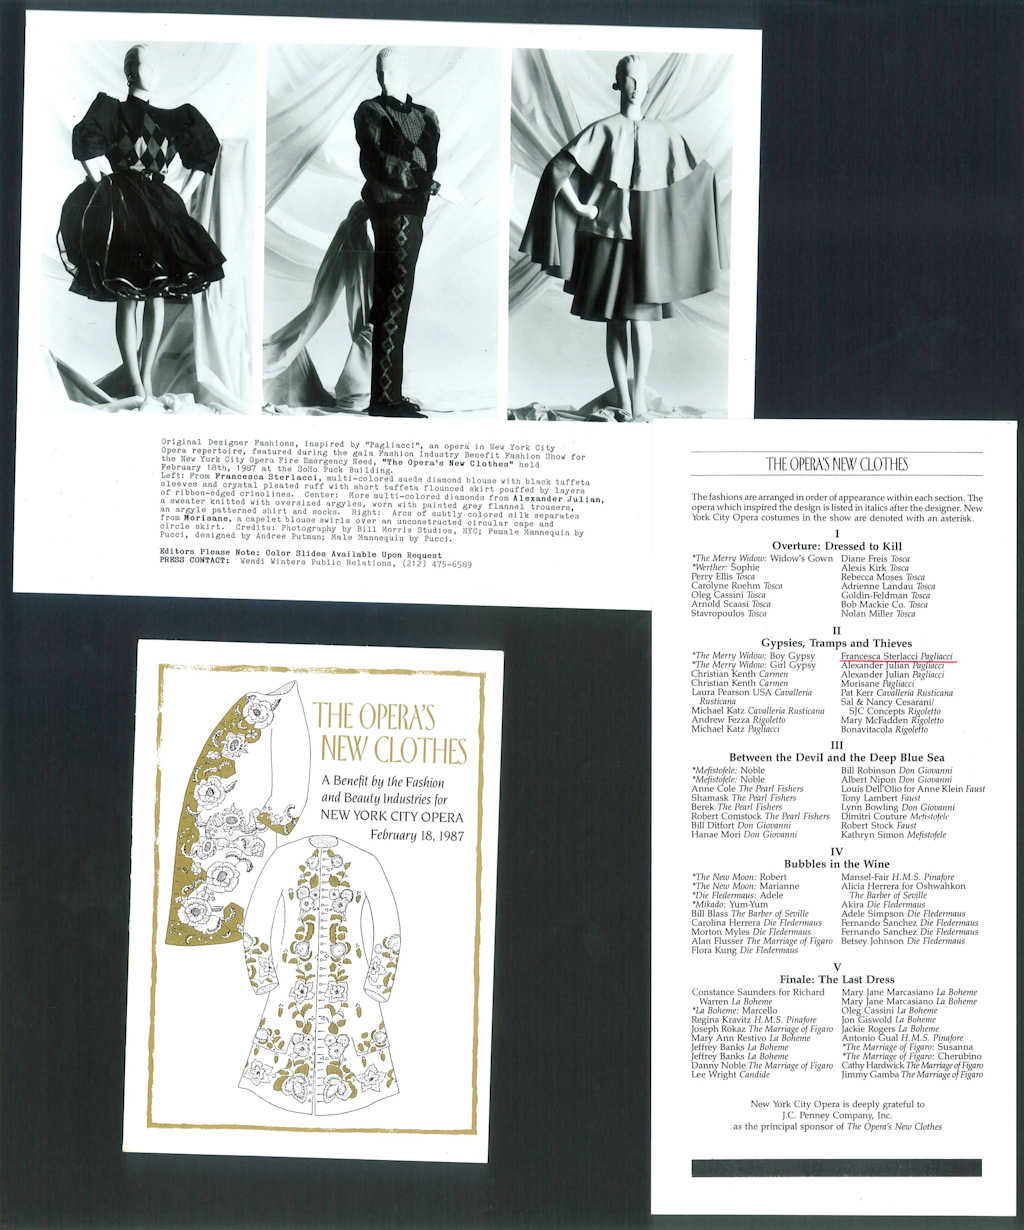 historical dictionary of the fashion industry Figure 5 2 leadership creativity and adaptive creativity in relation to job type and price-point, with early 21st century fashion industry examples 127 figure 5 3 combining leadership creativity with adaptive creativity 129.